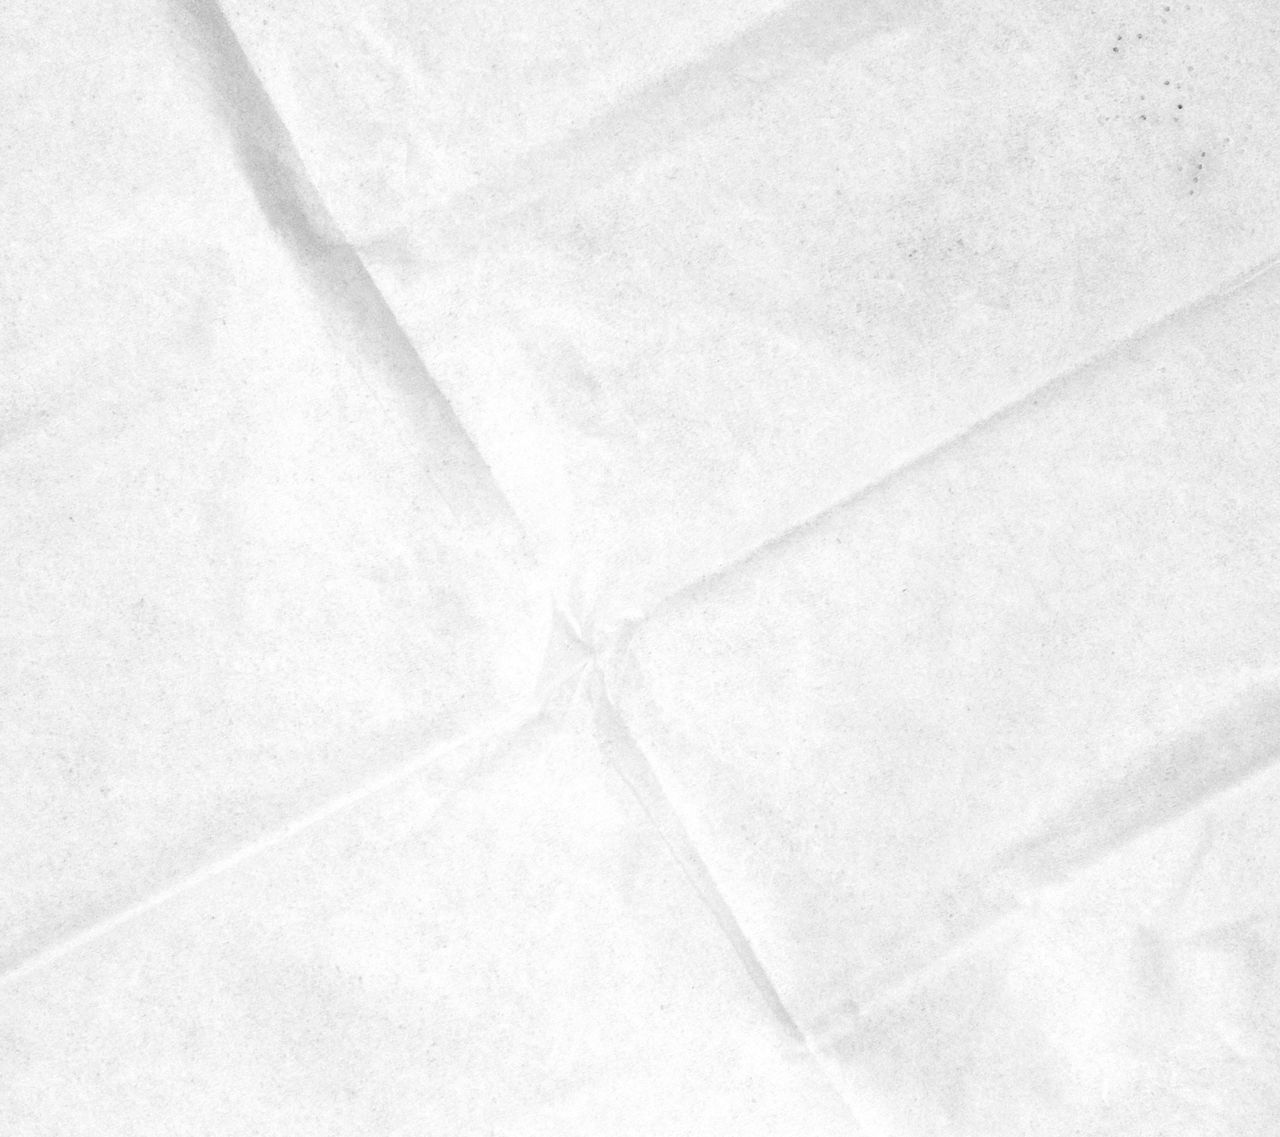 paper, no people, textured, backgrounds, close-up, day, outdoors, ice rink